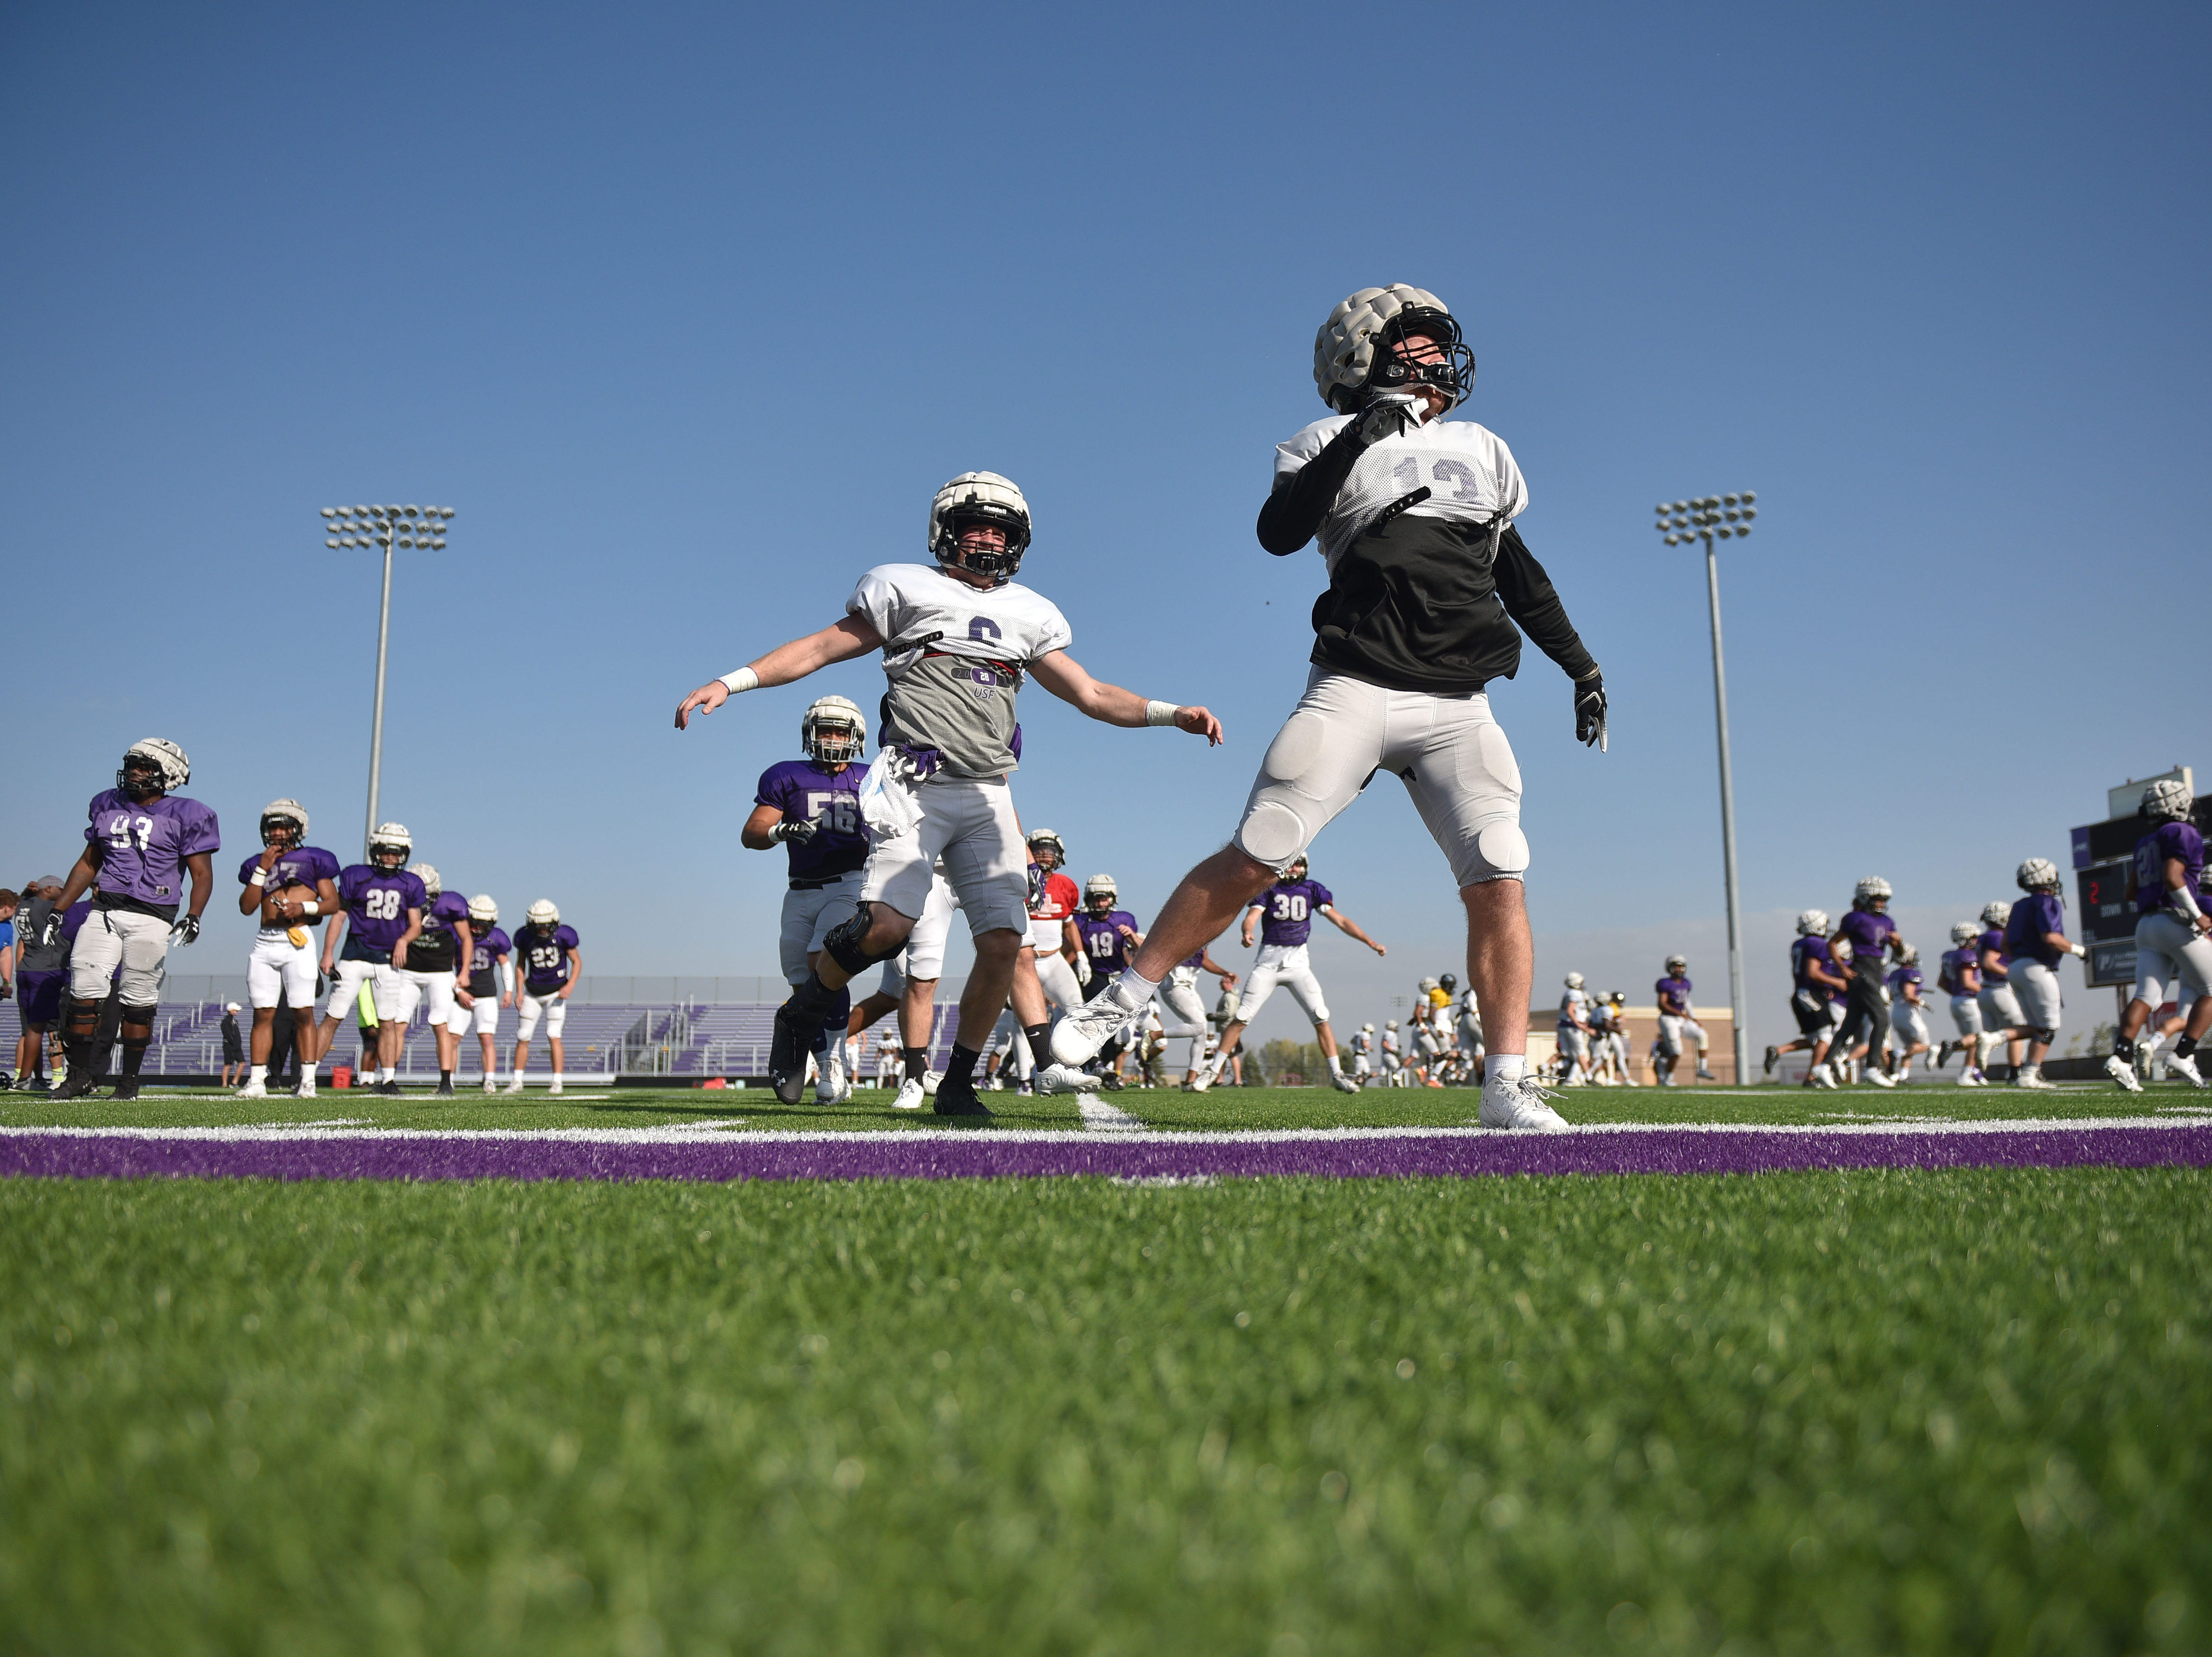 University of Sioux Falls practice Wednesday, Oct. 3, at Bob Young field.